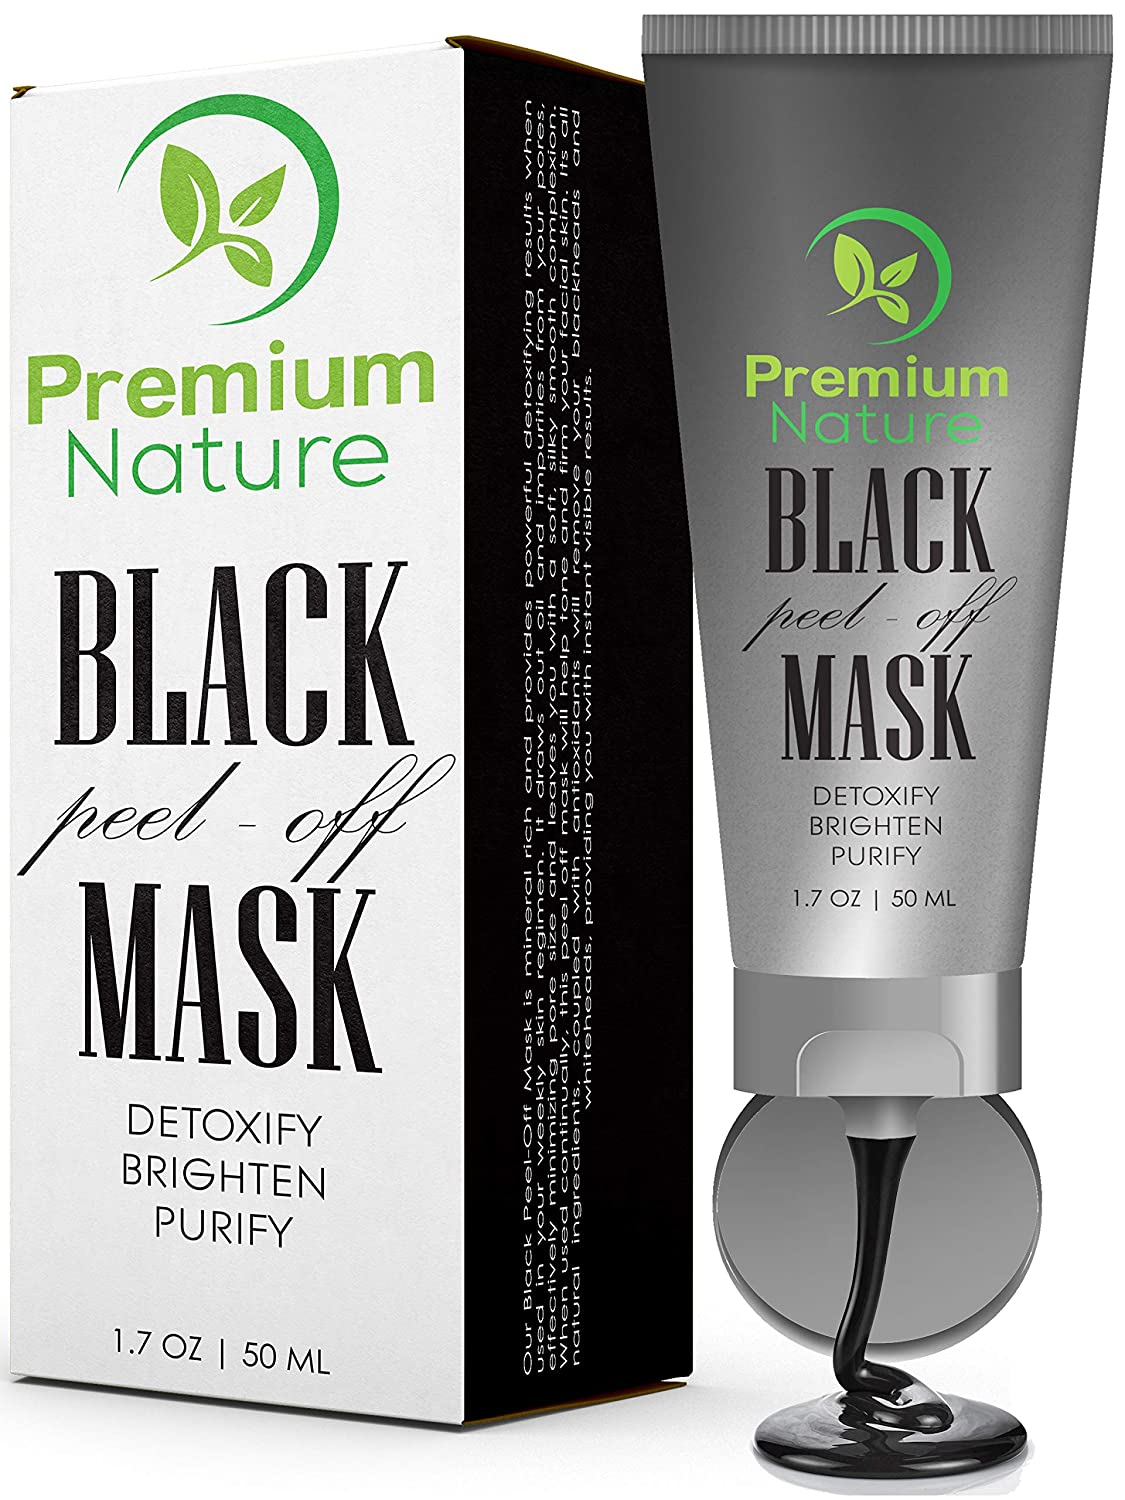 Black Charcoal Peel Off Mask - Natural Blackhead Remover Mask Activated Charcoal Black Face Mask Peel Off for Blackheads Facial Blackhead Removal Mask Deep Cleansing Facemask Pore Detox Cleanser